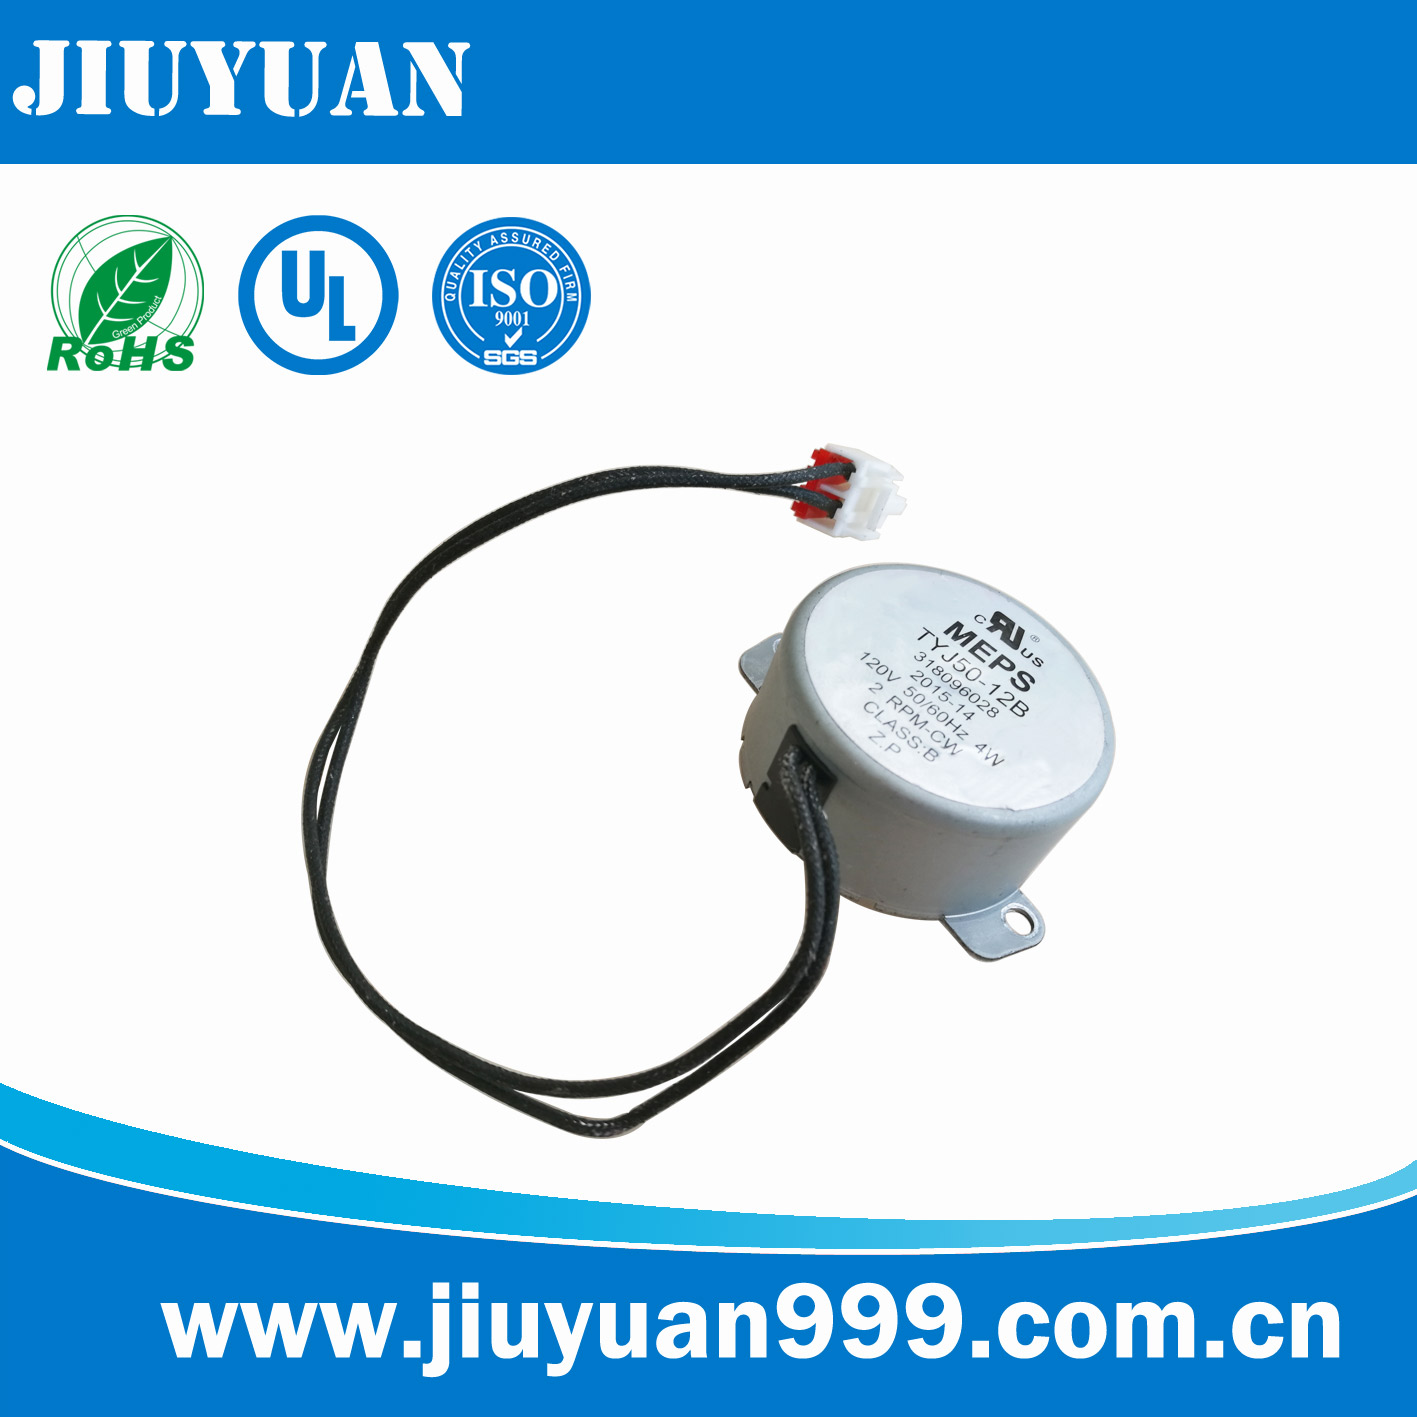 AC micro permanent magnet synchronous motor for Toaster / microwave oven / bread machine